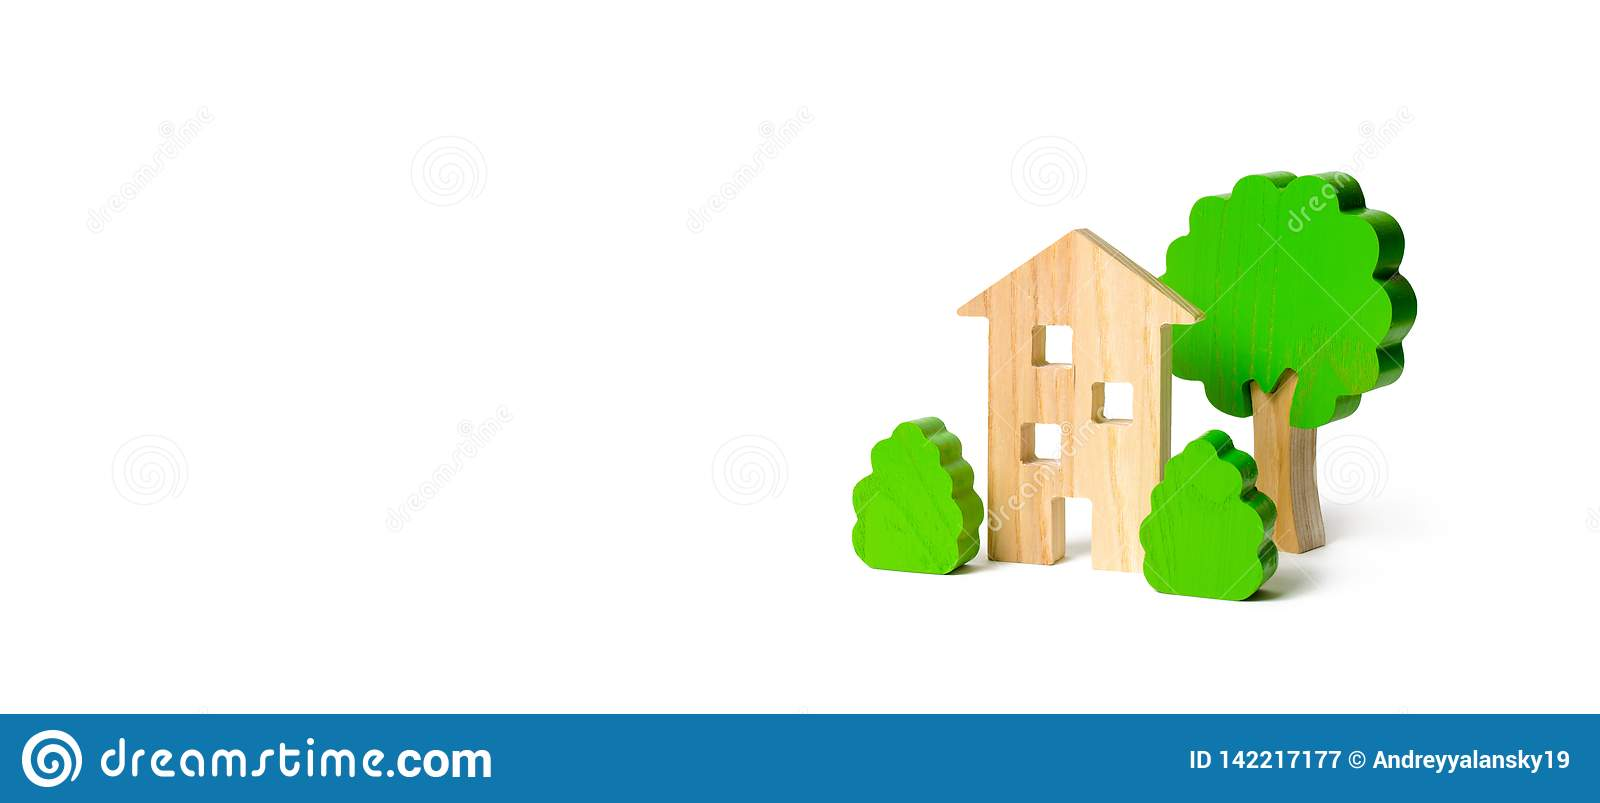 Wooden multi-storey building surrounded by bushes and trees on an isolated background. Acquisition of affordable housing